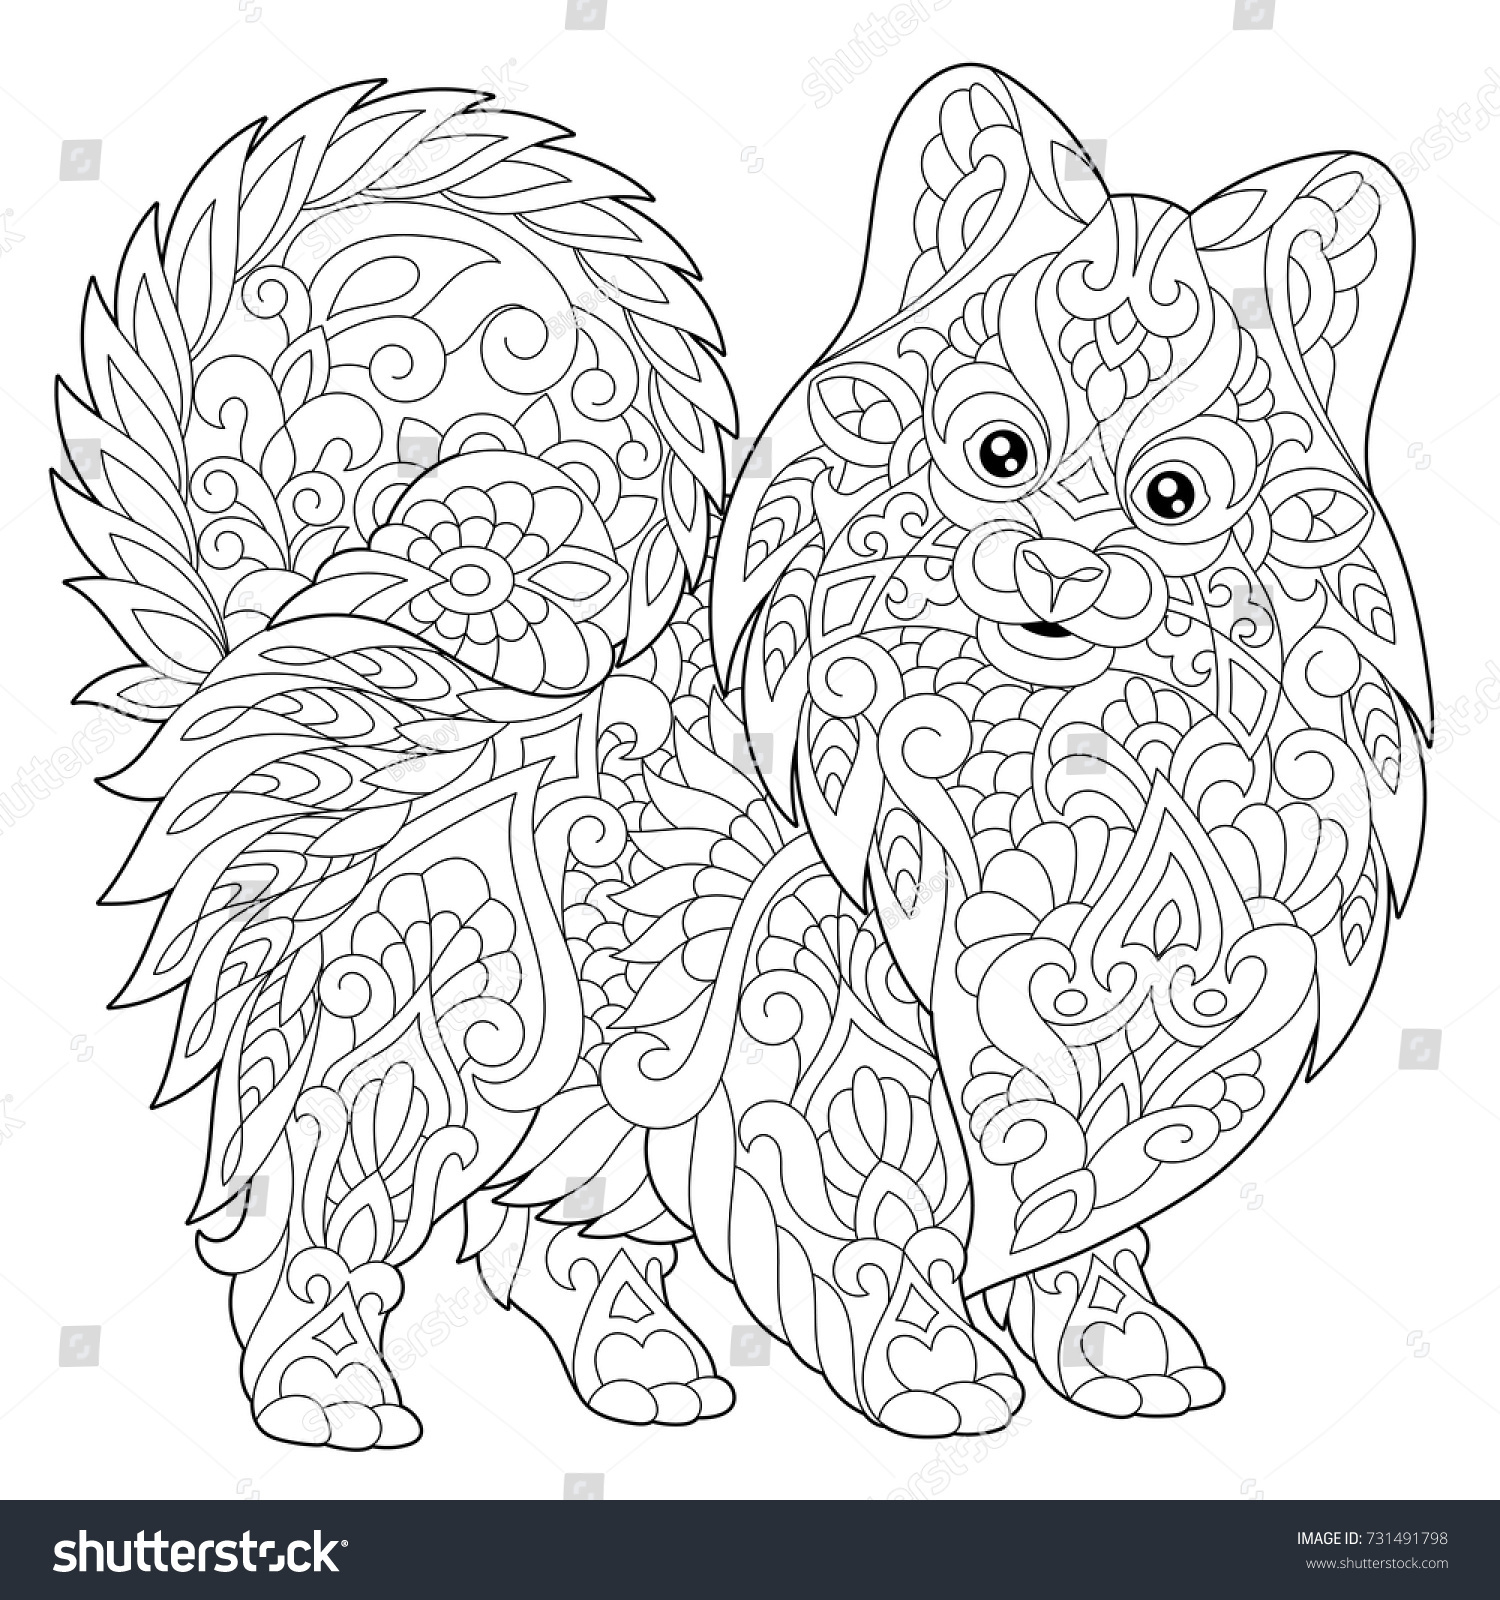 Coloring Pages Year Of The Dog : Coloring page pomeranian dog symbol stock vector